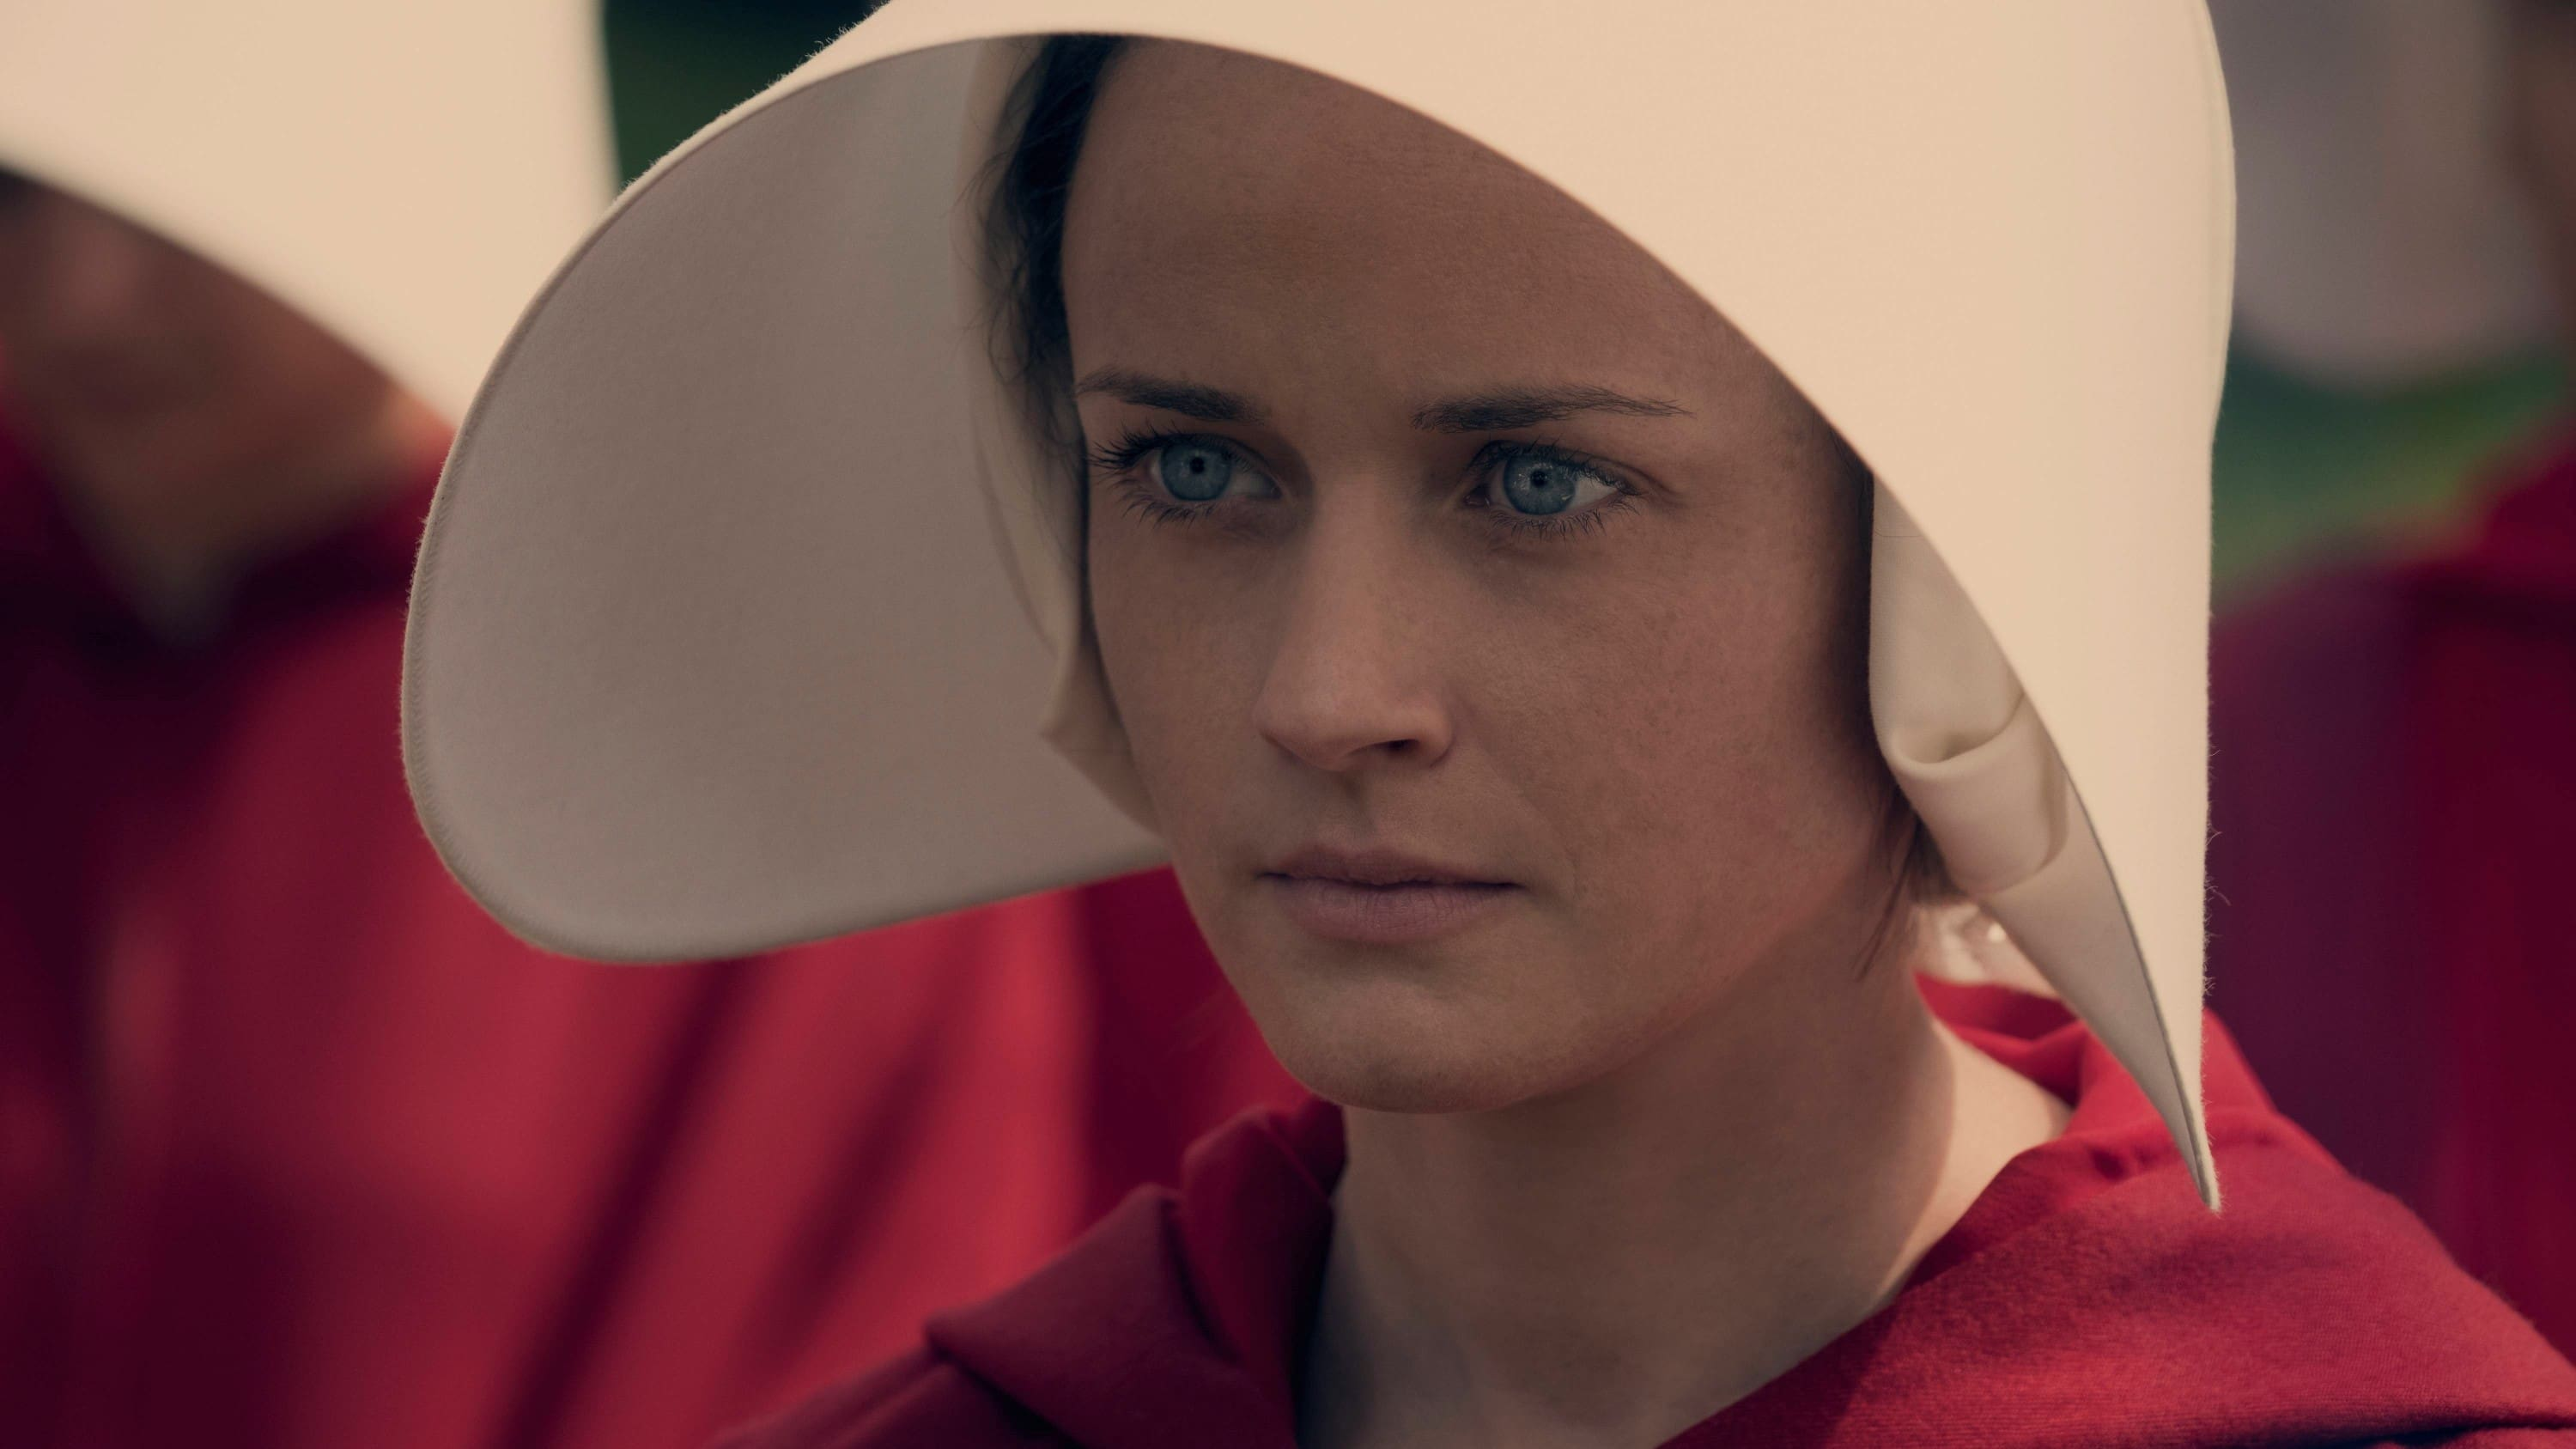 The Handmaid's Tale, Season 1 wiki, synopsis, reviews - Movies Rankings!